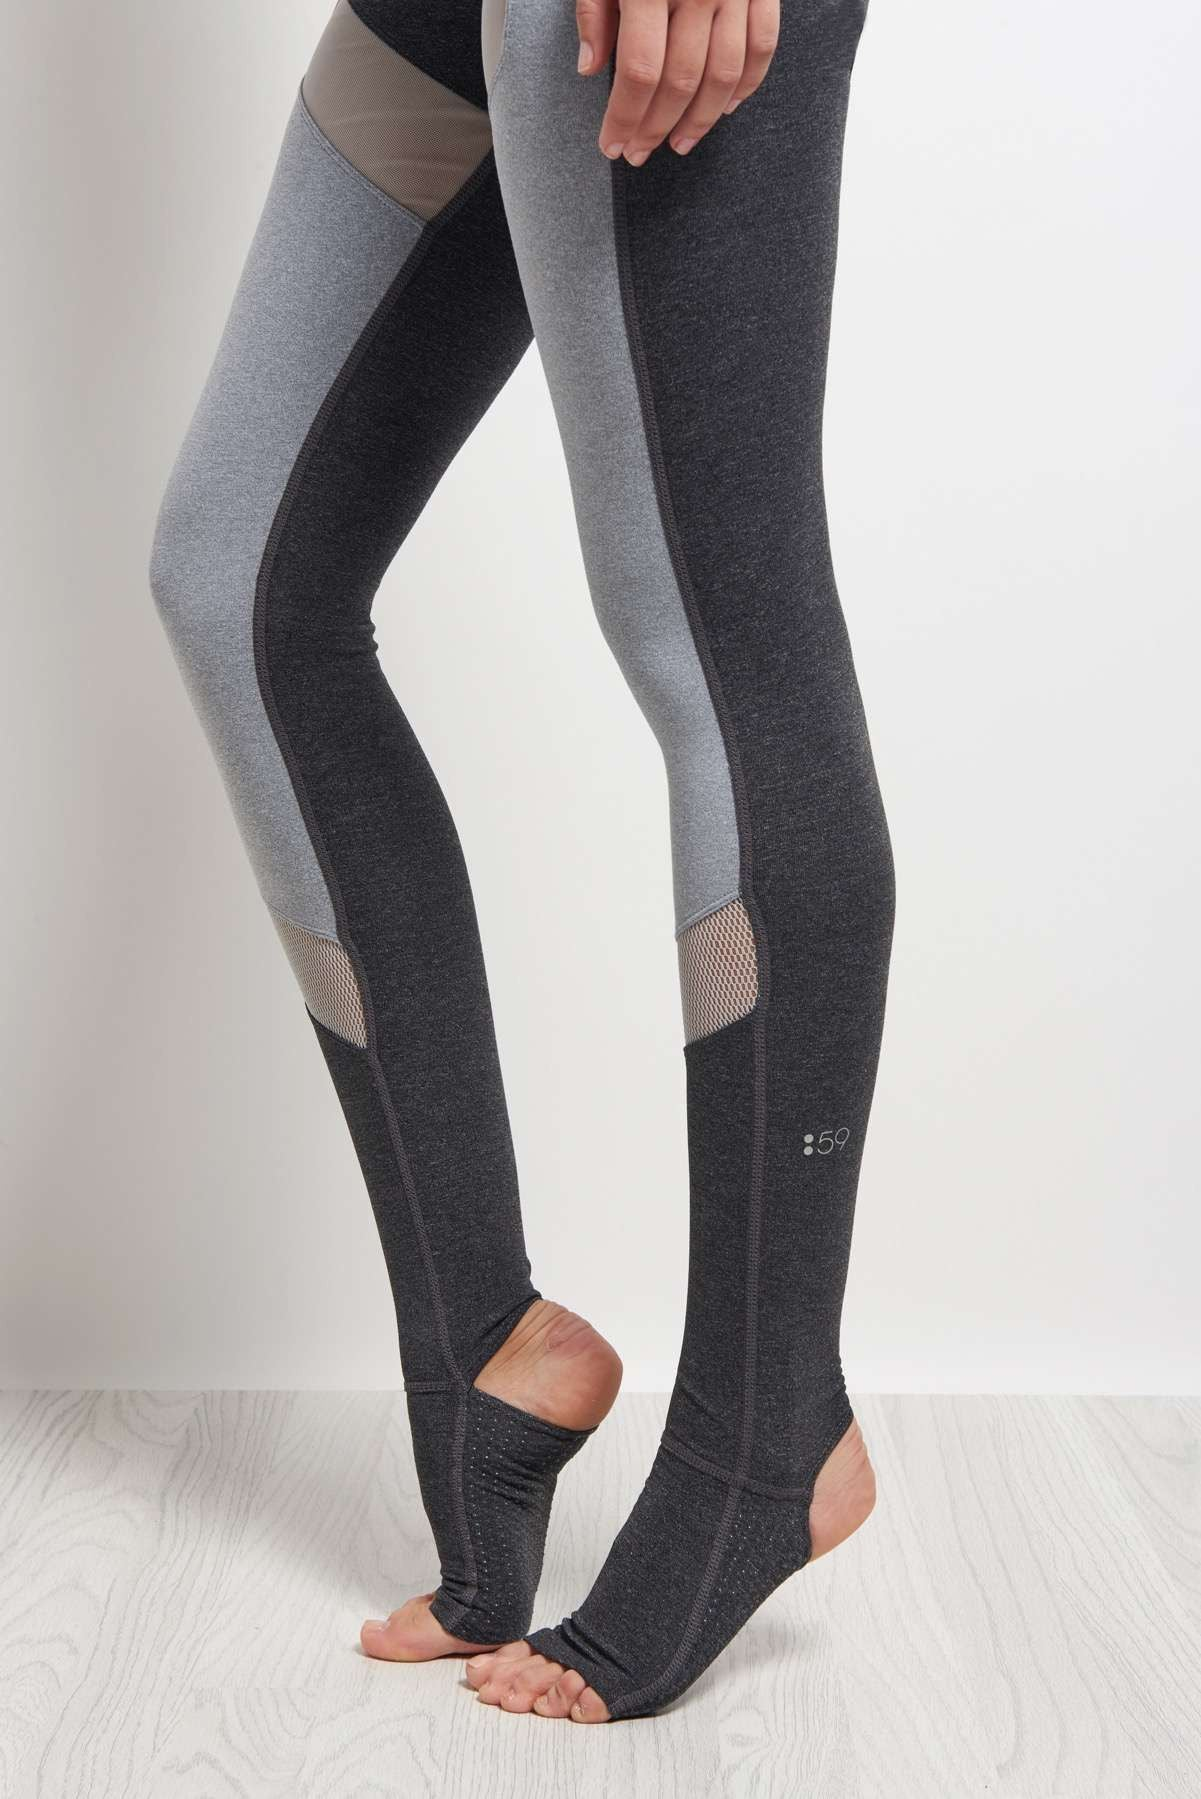 Splits59 Demi Stirrup Tight Heather Grey / Light Heather Grey image 4